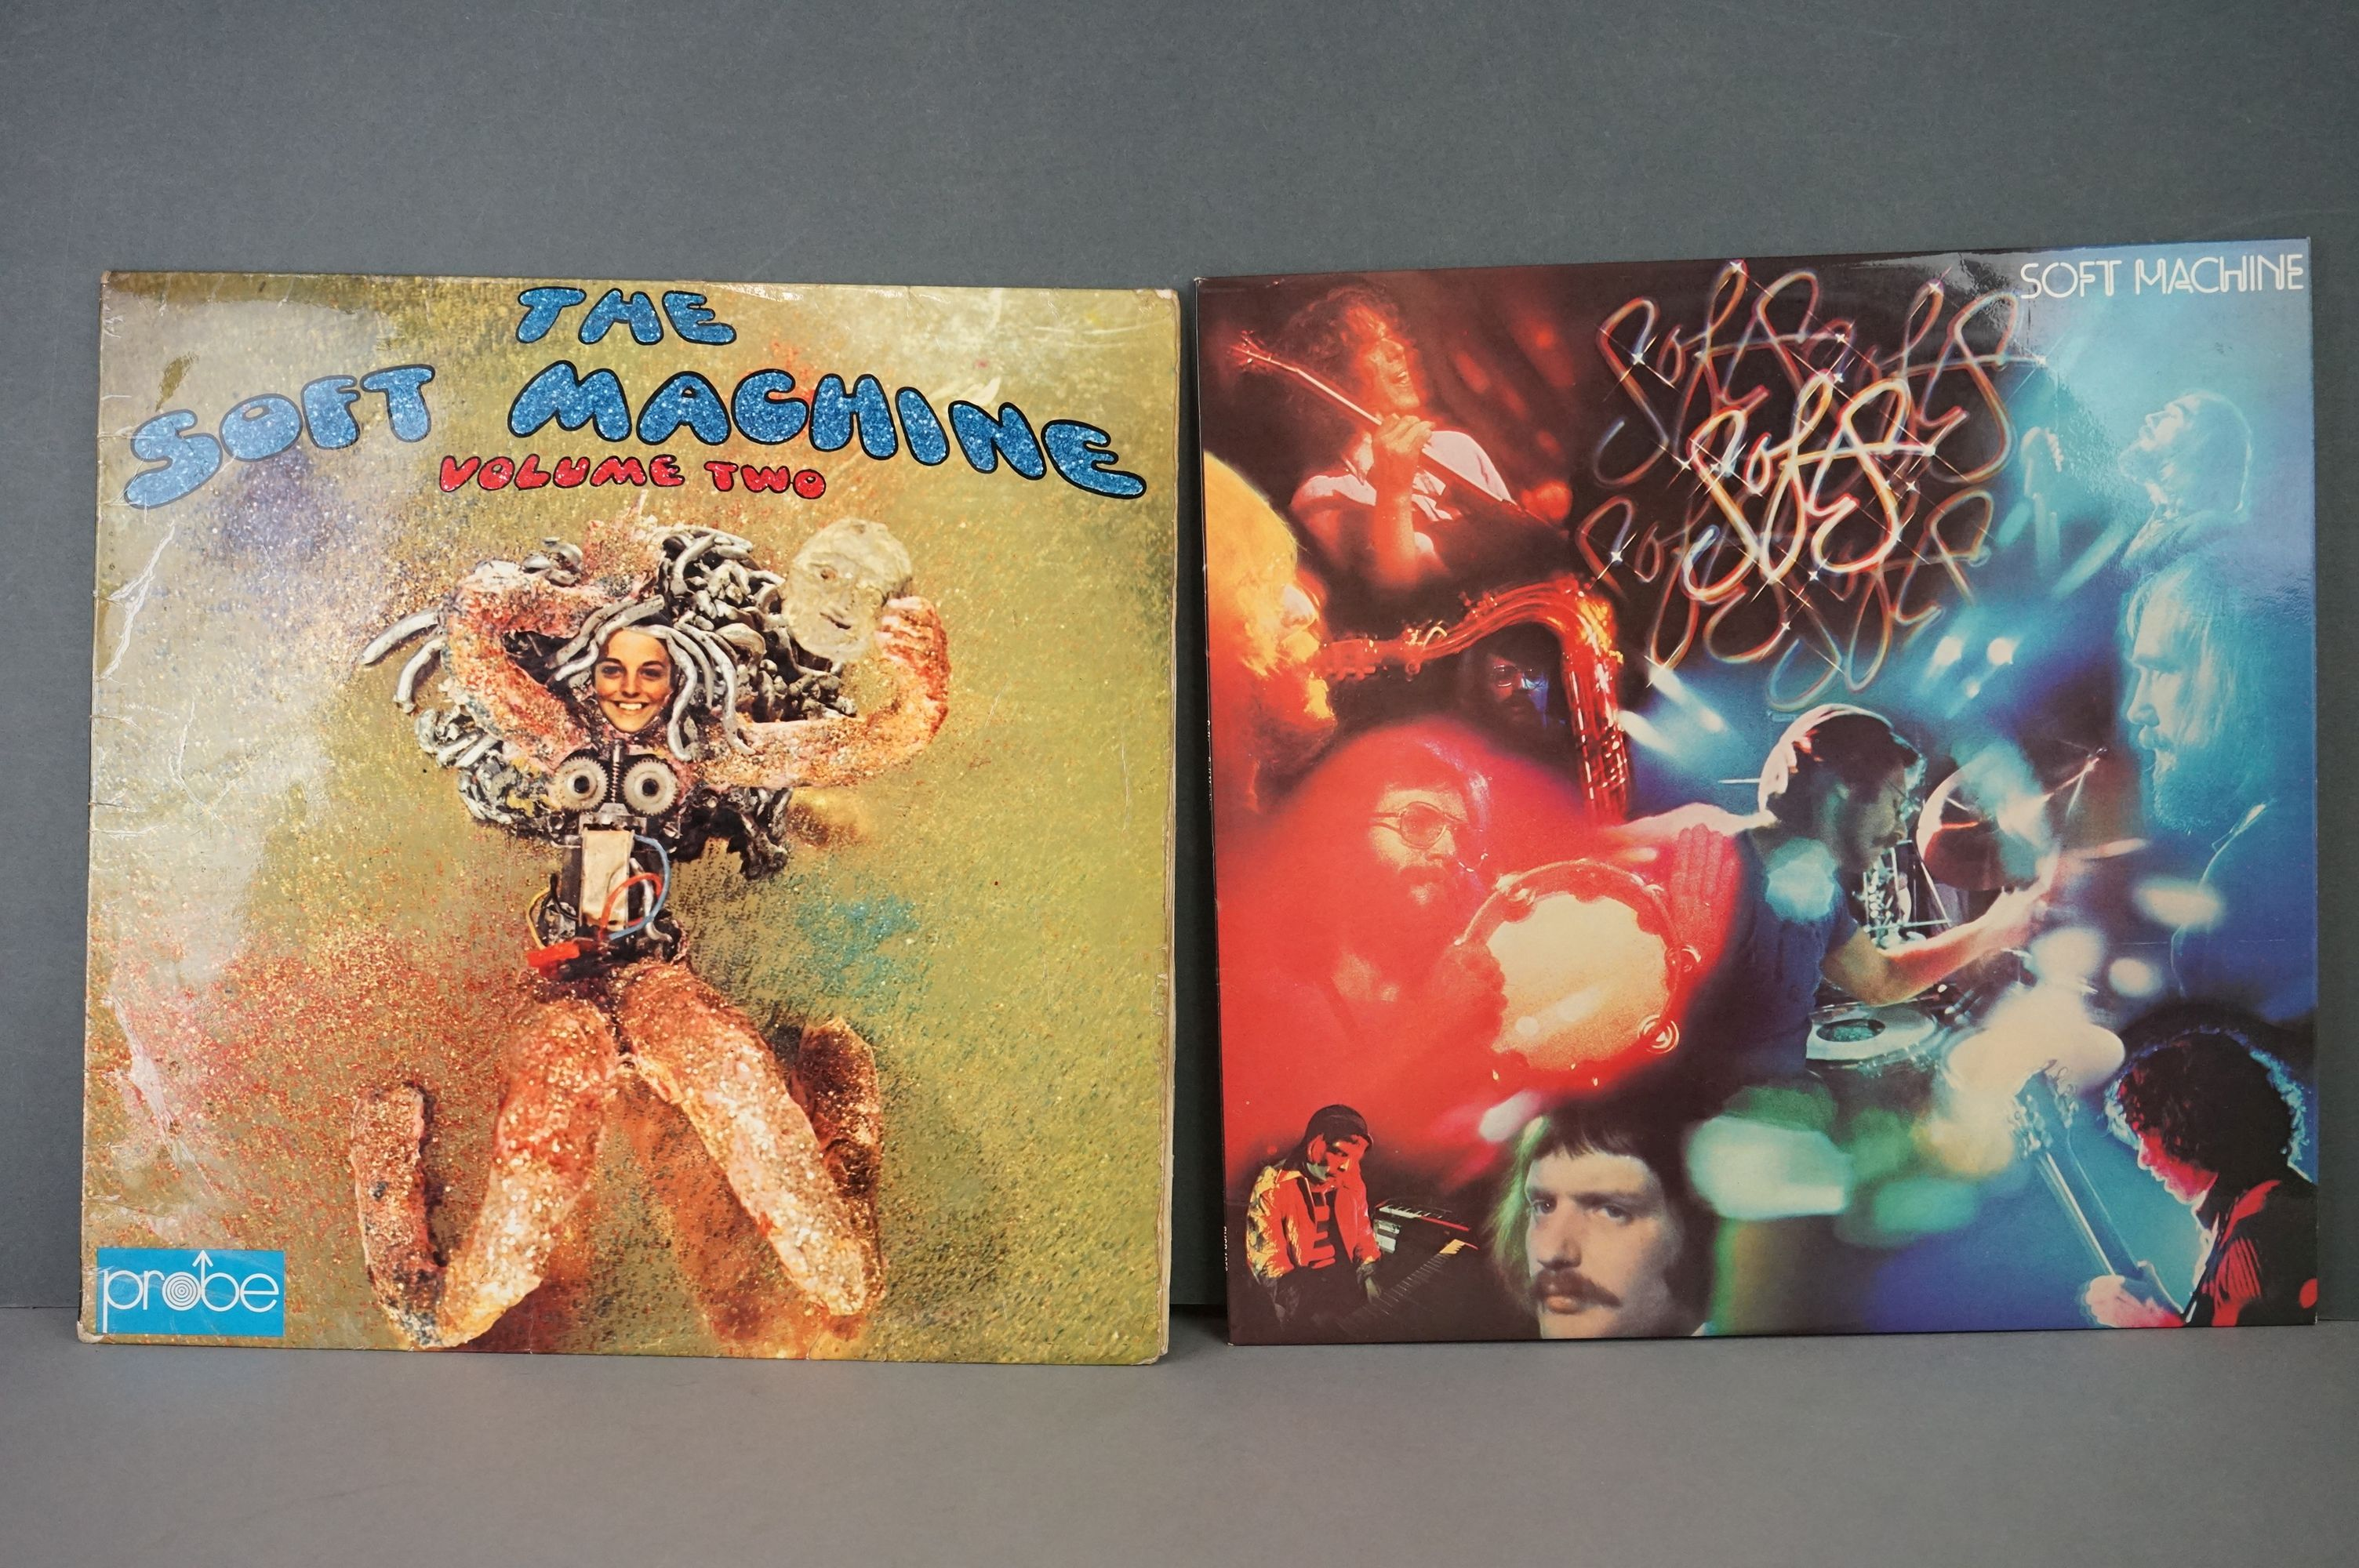 Vinyl - Two Soft Machine vinyl LP's to include Softs (EMI Records SHSP 4056), Volume Two (Probe